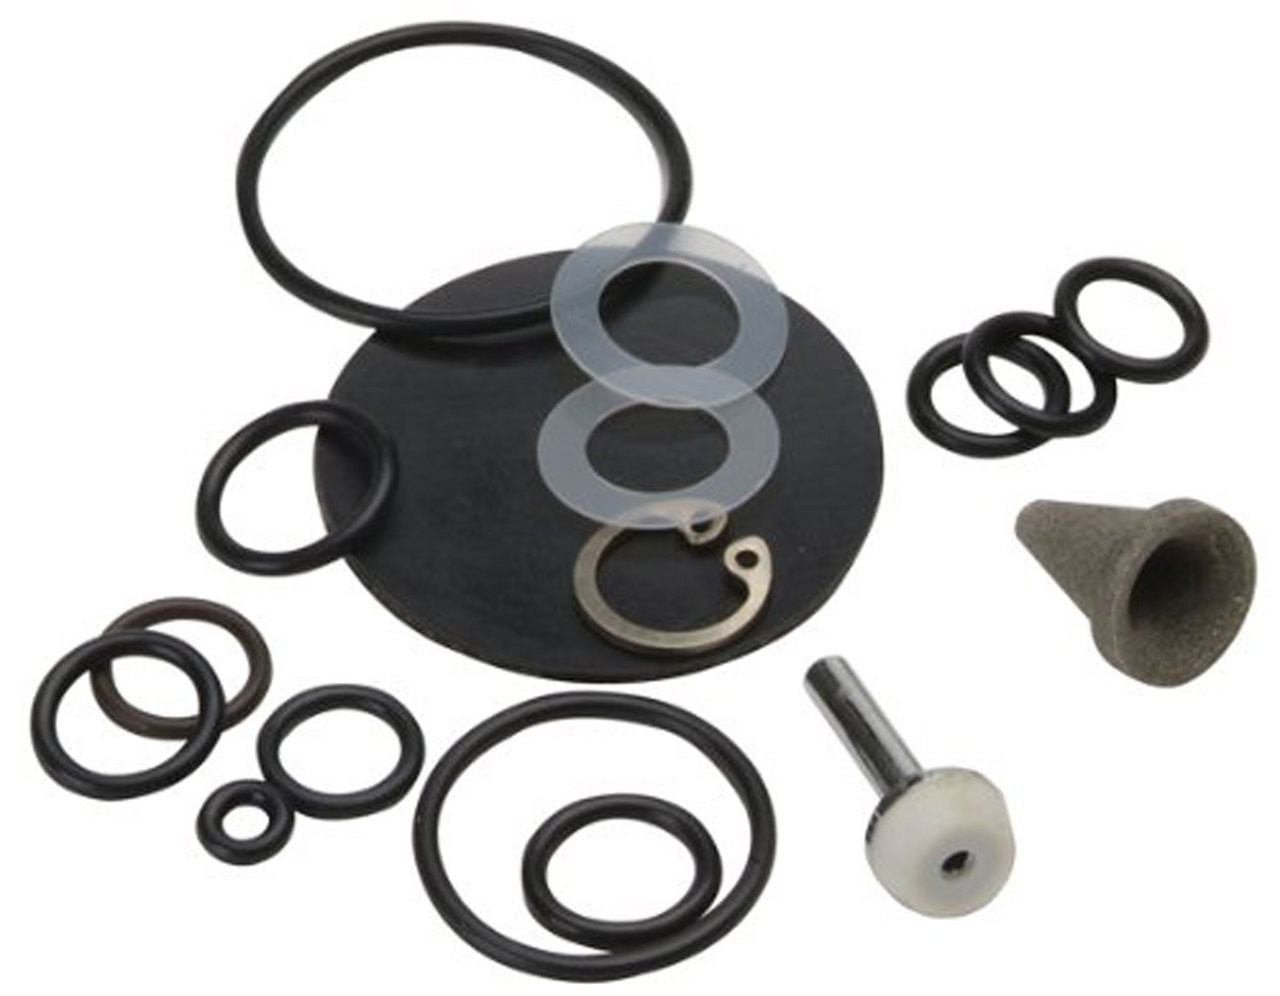 Zeagle Scuba Regulator First Stage Parts Kit RaZort Regulator 345-1002